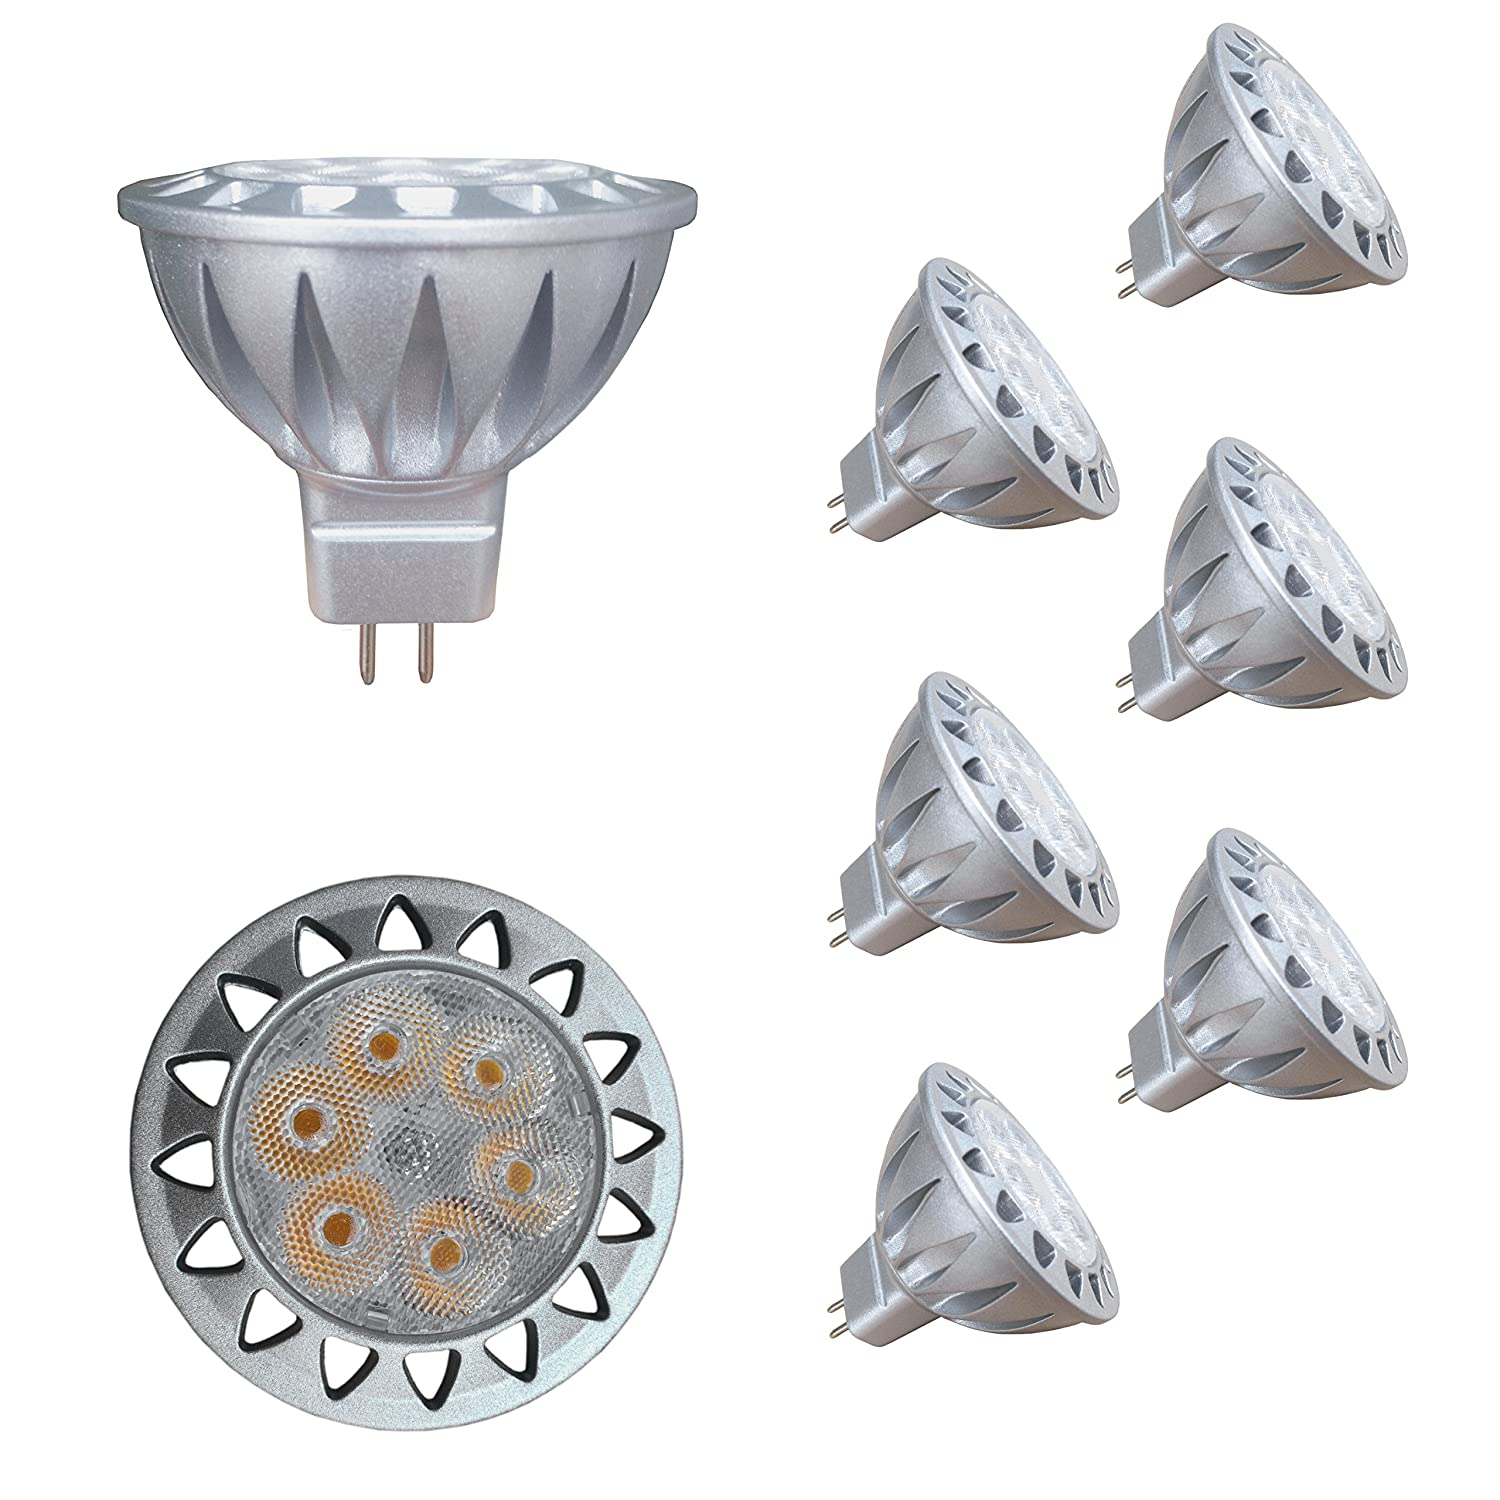 ALIDE MR16 Led Bulbs Replace 50W Halogen Equivalent,Bi-pin GU5.3 7W 12V Low Voltage,2700K Warm White Spotlight for Outdoor Landscape Flood Track Recessed Down Lighting,Not Dimmable,50MM,560lm,38°,6pcs